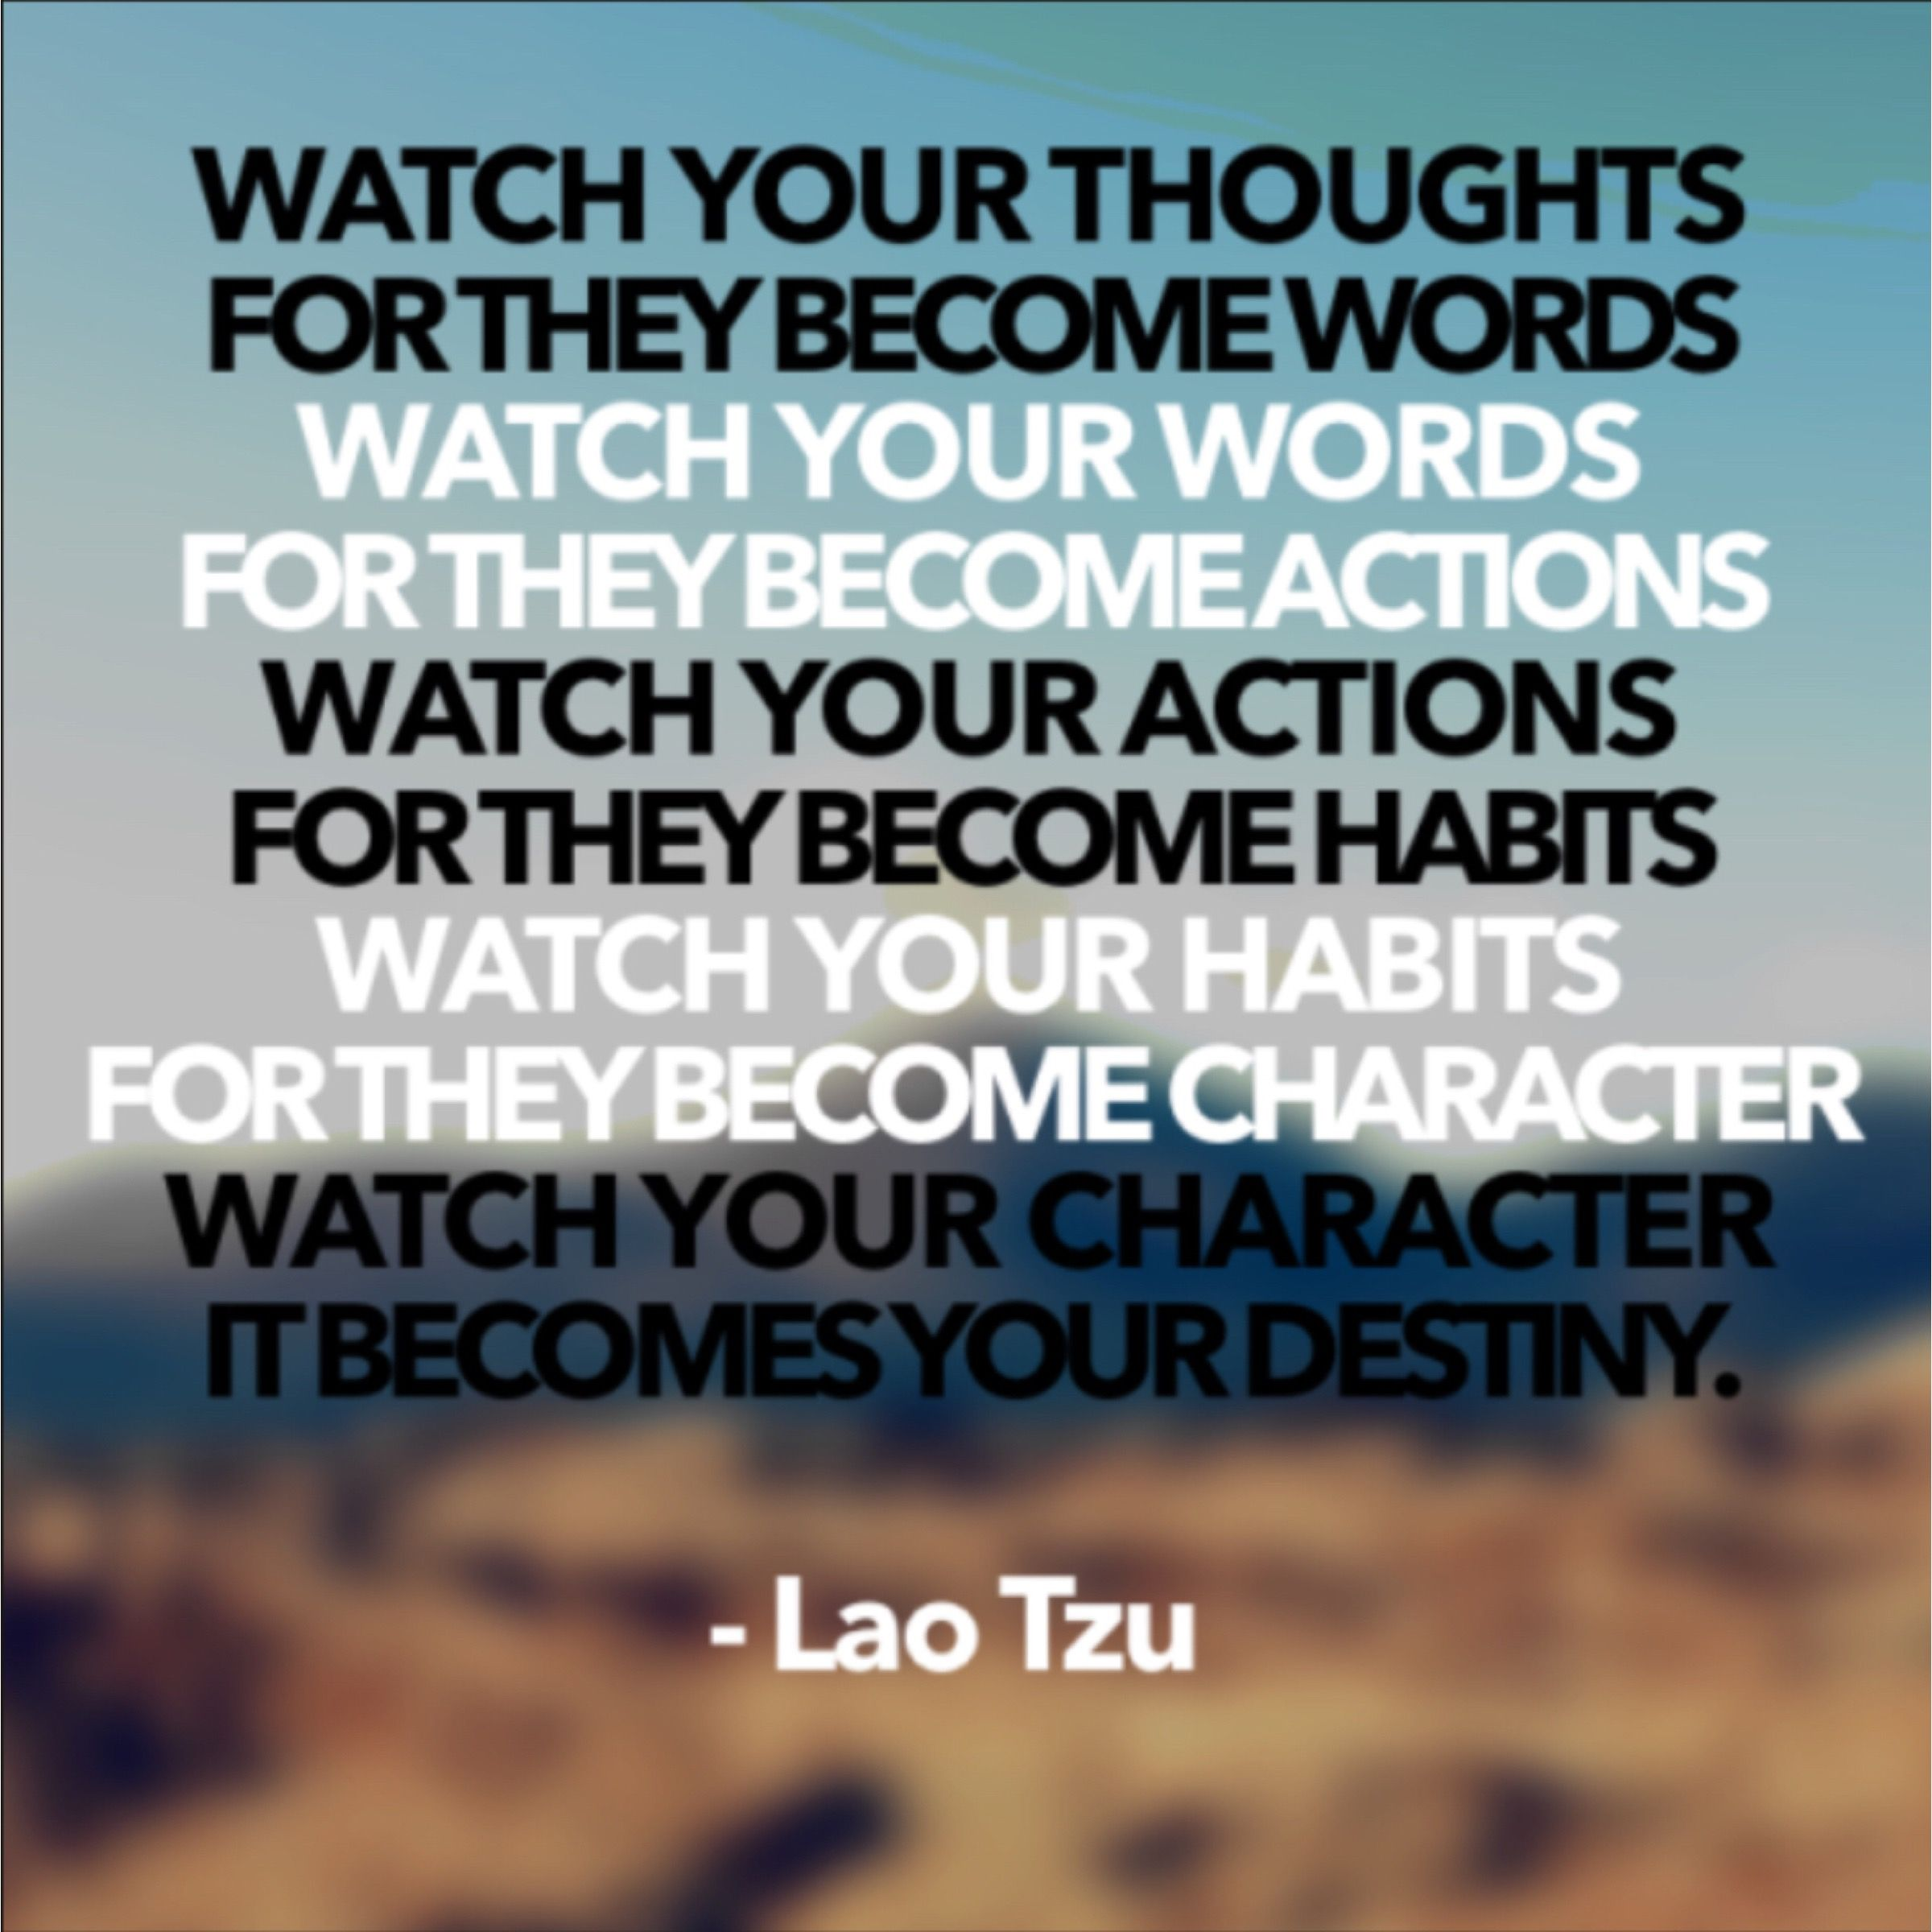 Lao Tzu Quotes Life Pinmark Uecker On Ed  Pinterest  Buddhism Success And Qoutes